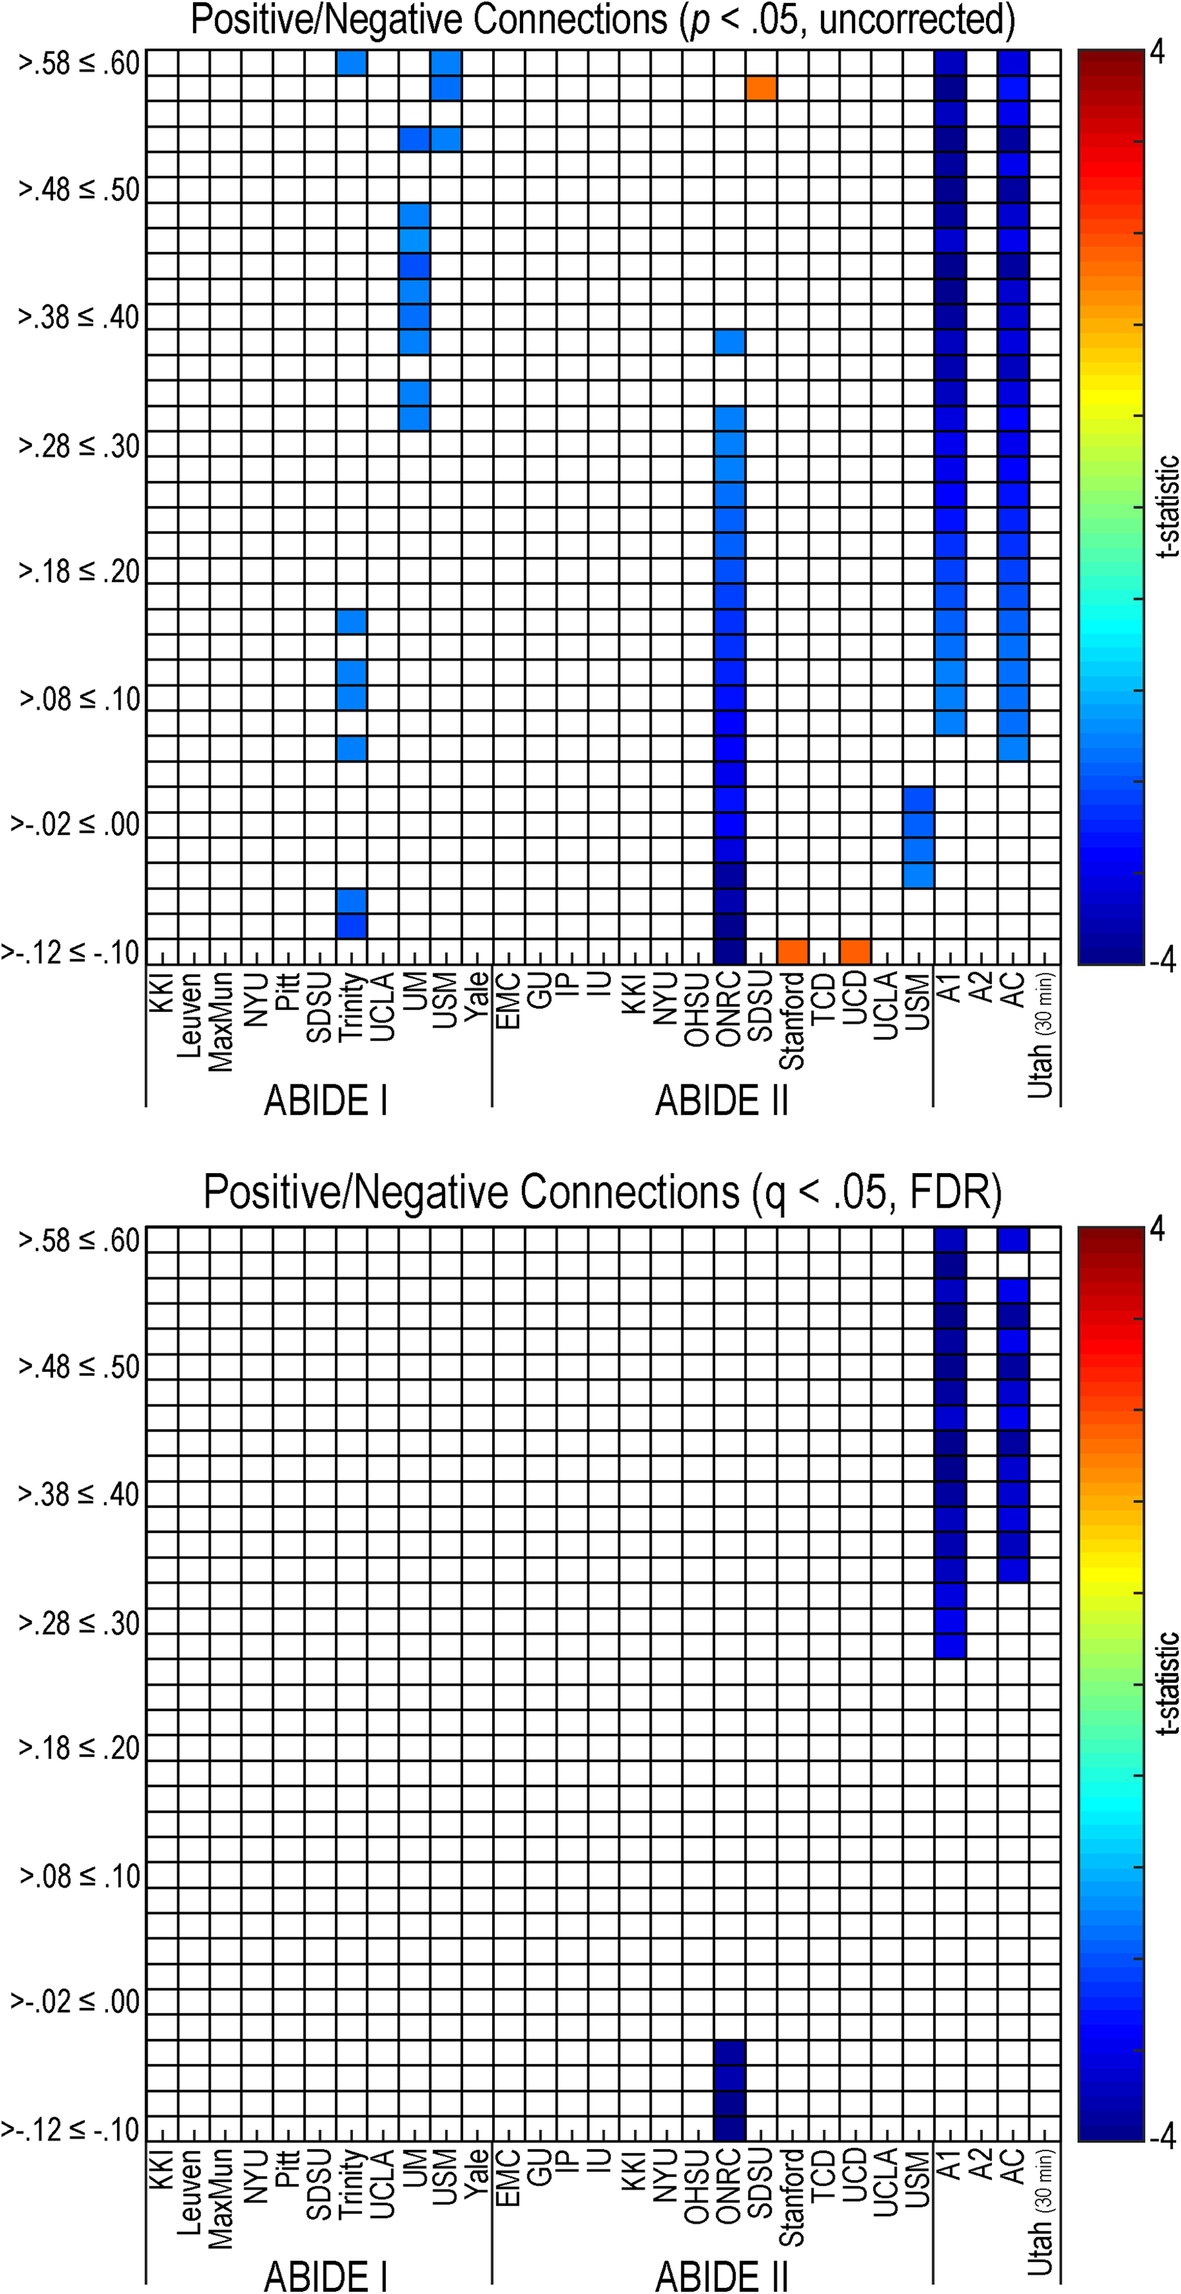 Generalizability and reproducibility of functional connectivity in